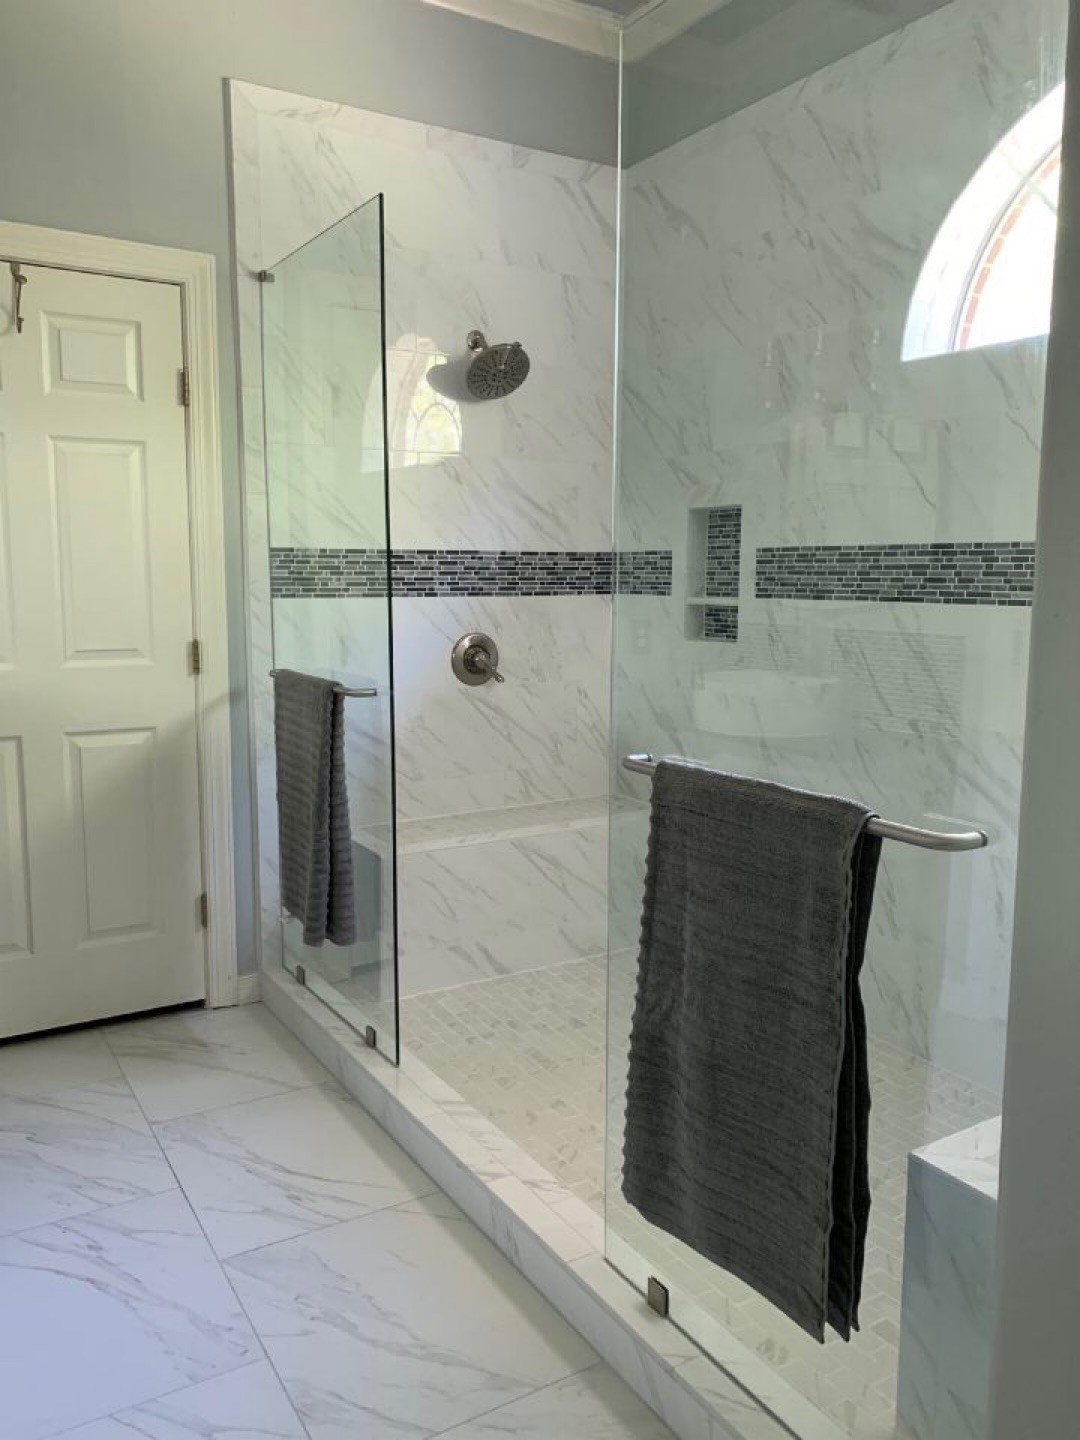 San antonio bathroom remodeling bathroom remodel san antonio - Small bathroom remodel with tub ...